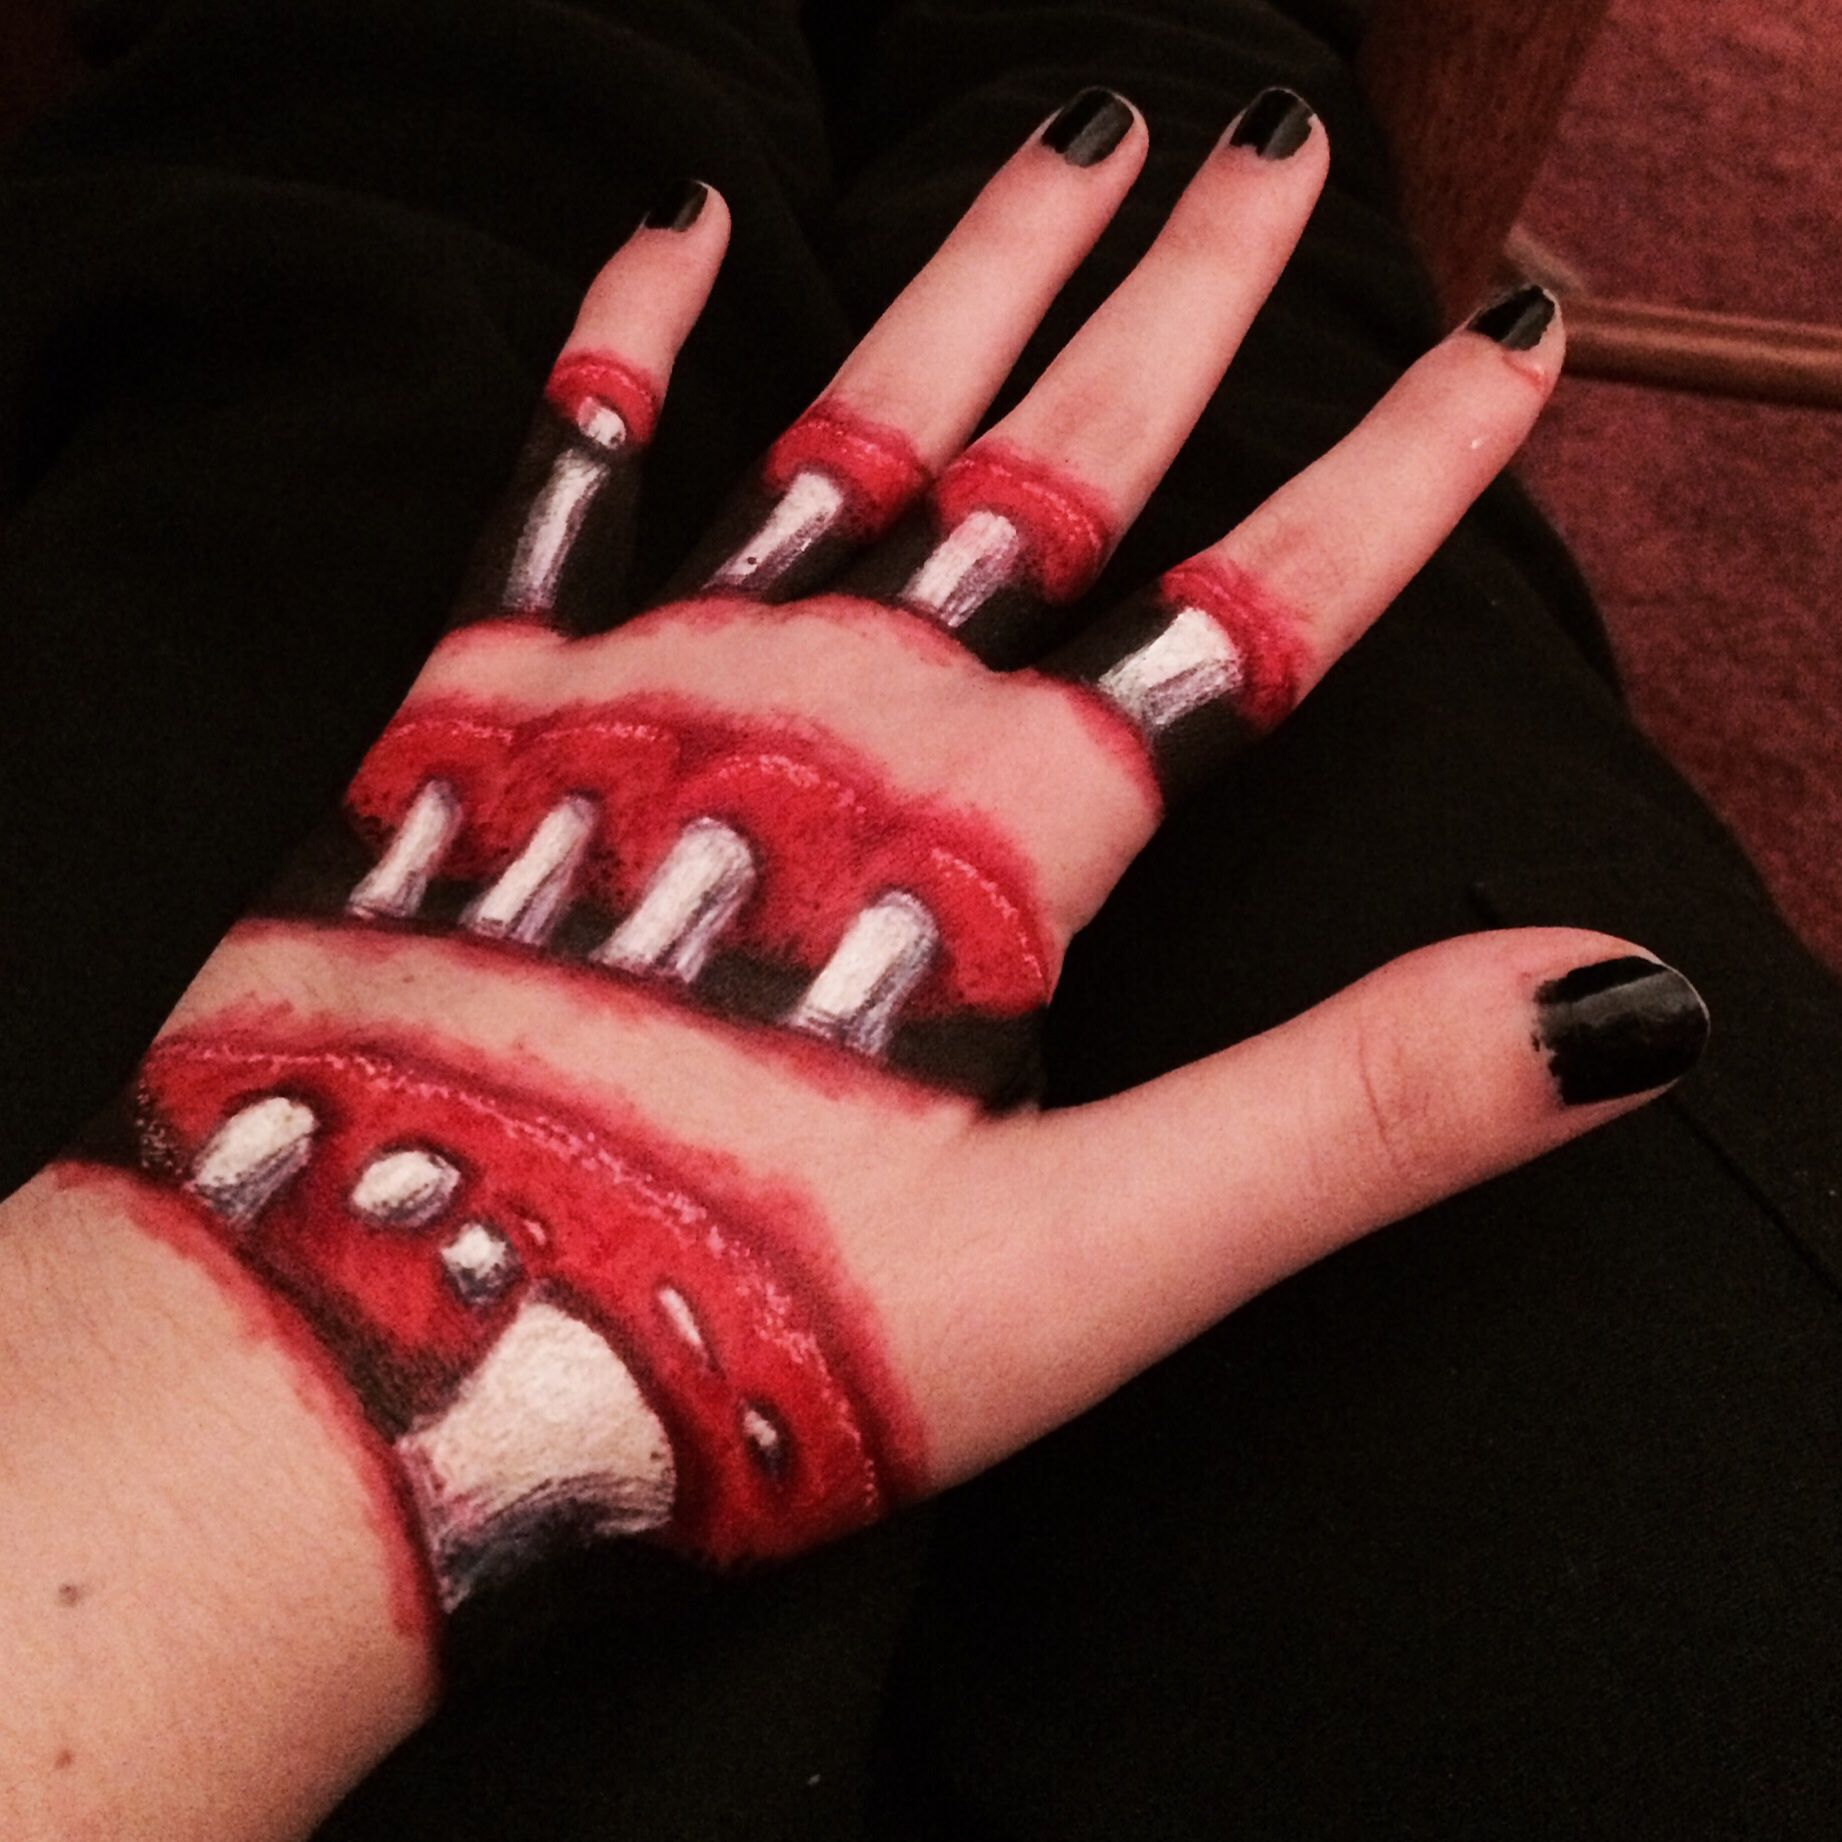 Hand made to look torn and disfigured by using makeup | Makeup ...